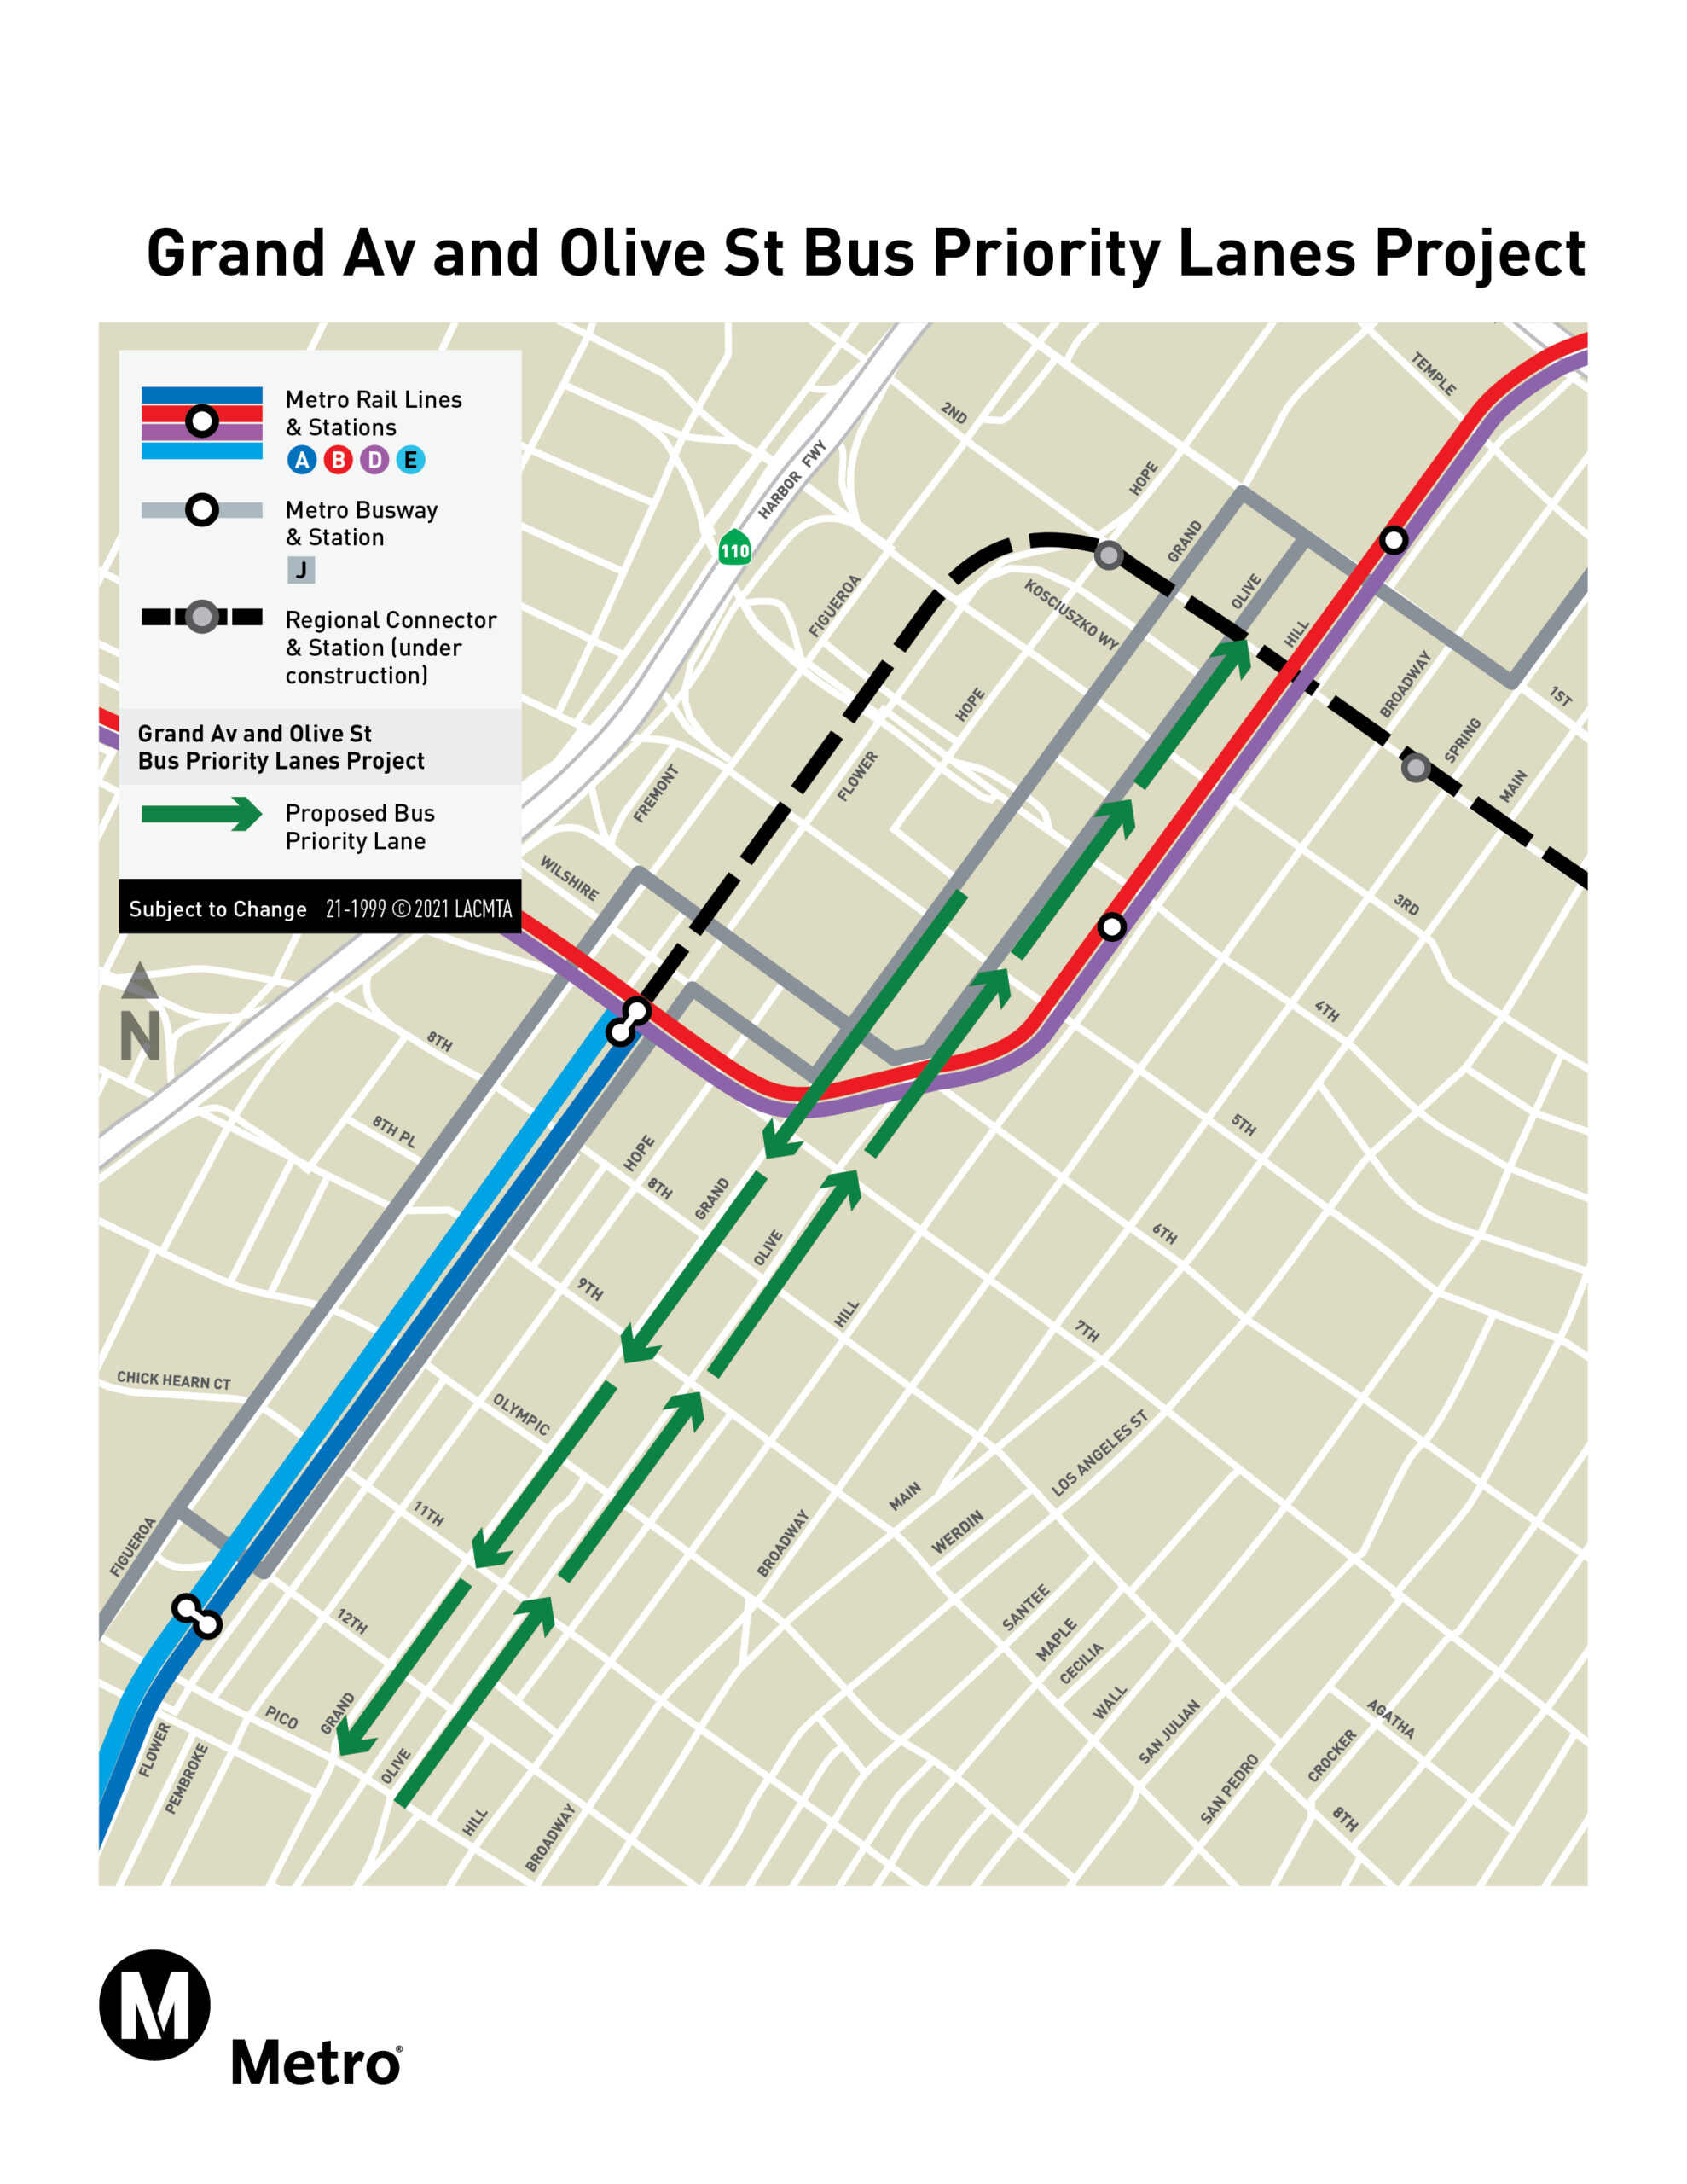 Grand Av and Olive St Bus Priority Lanes Project Map